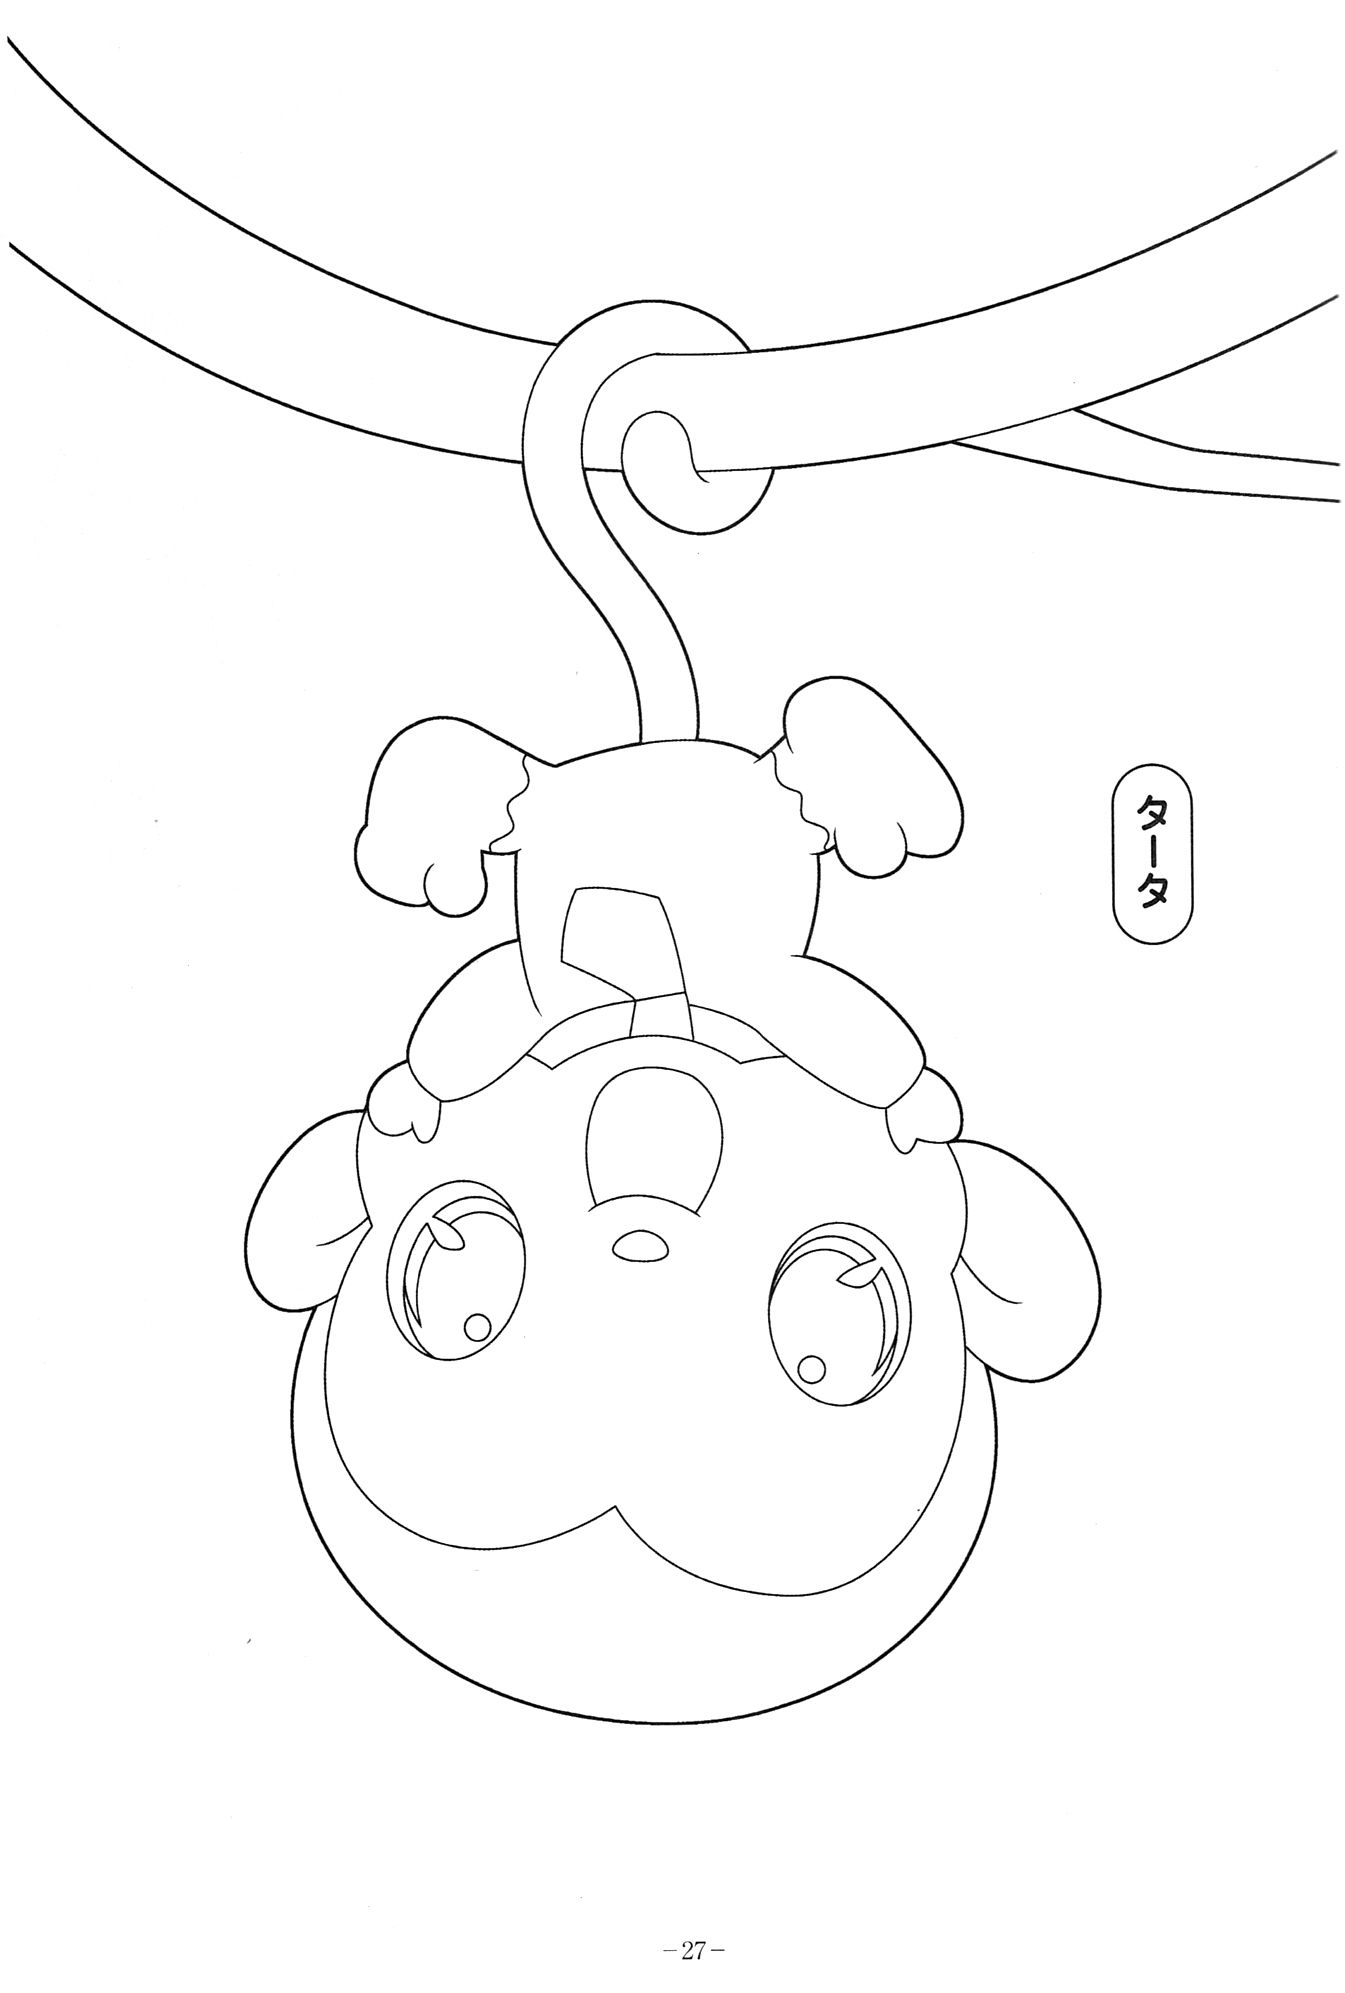 Jewelpet Tinkle Colouring Pages Images Crazy Gallery